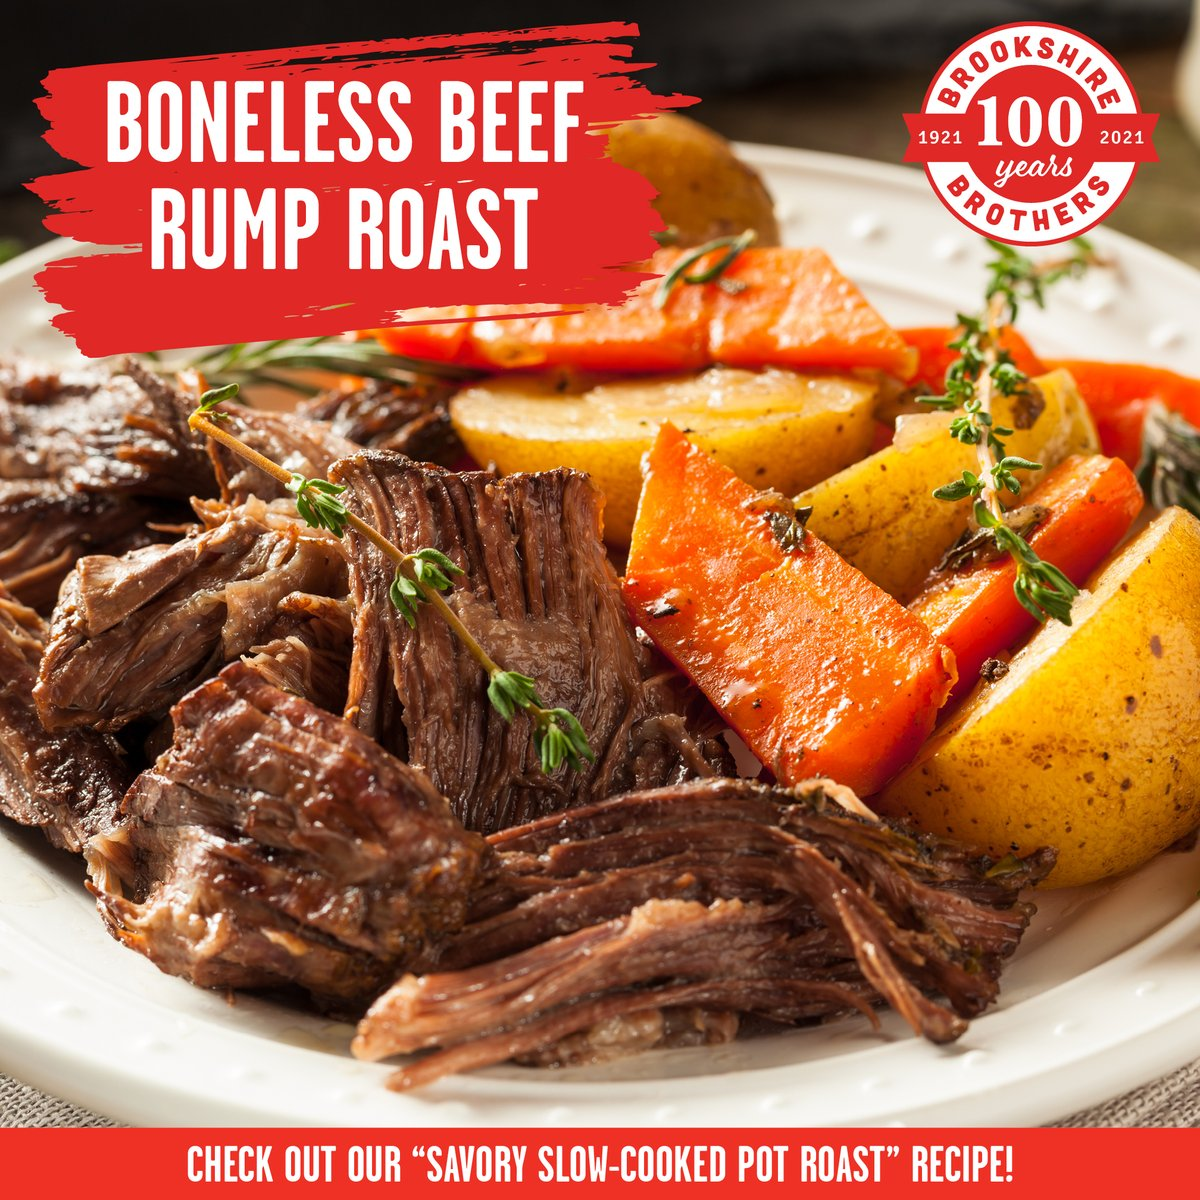 This week save on our Boneless Beef Rump Roast and use it to make our Savory Slow-Cooked Pot Roast recipe 🥘 🍽 ➡ bit.ly/3c2cqUM #BrookshireBrothers #Recipe #Instayum #roast #cookathome